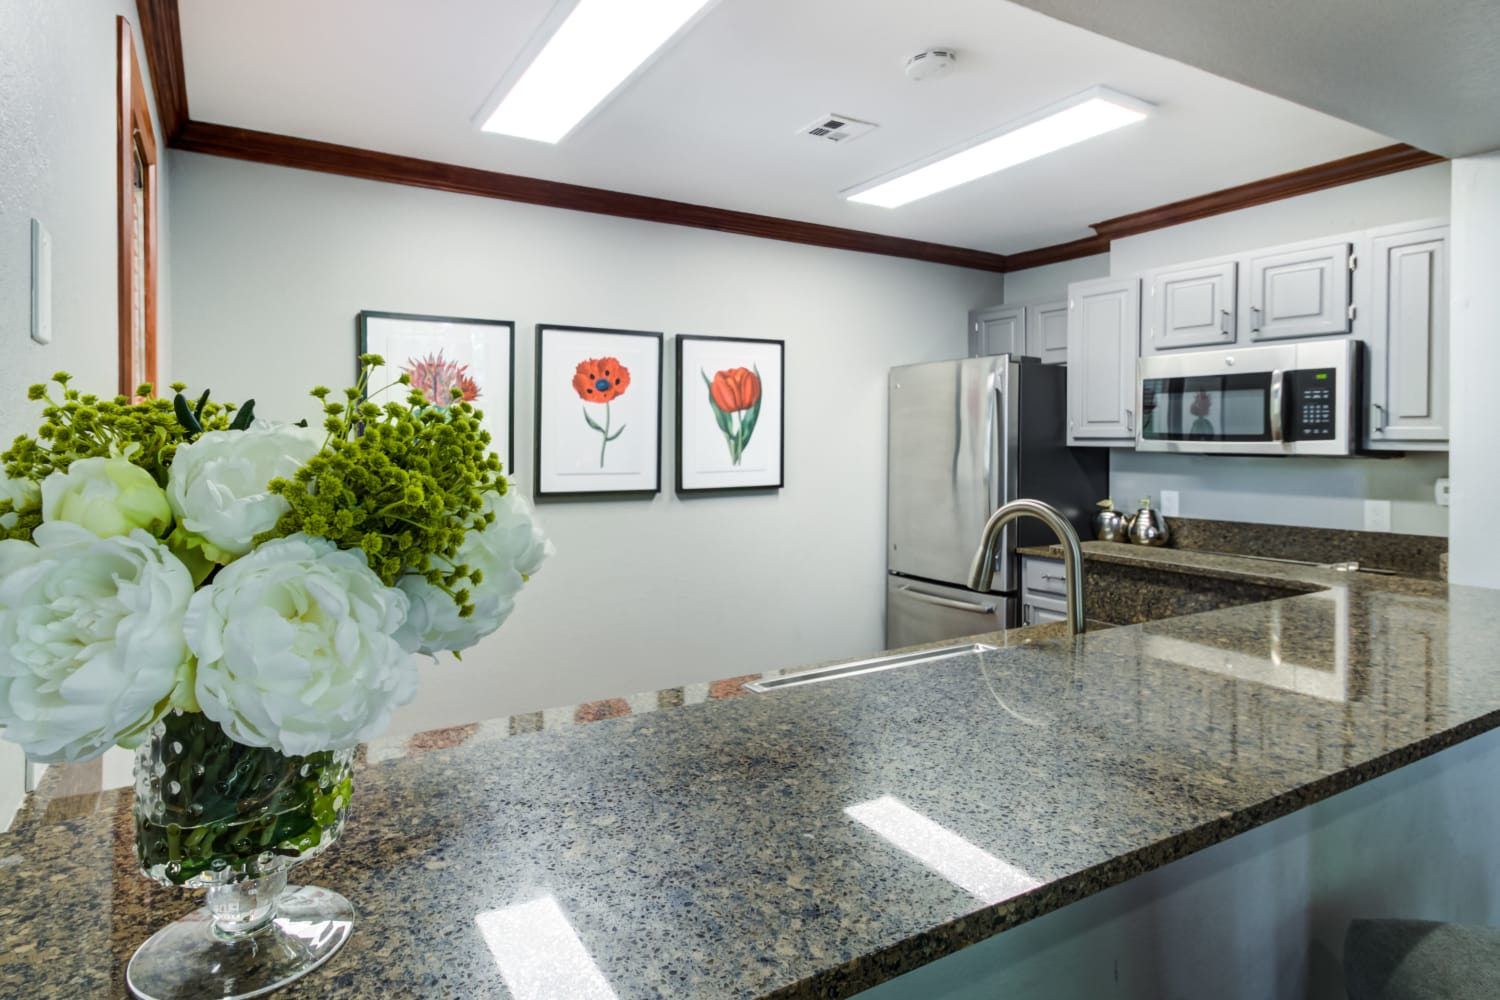 Call breakfast bar seating countertop in a kitchen at Irving Schoolhouse Apartments in Salt Lake City, Utah